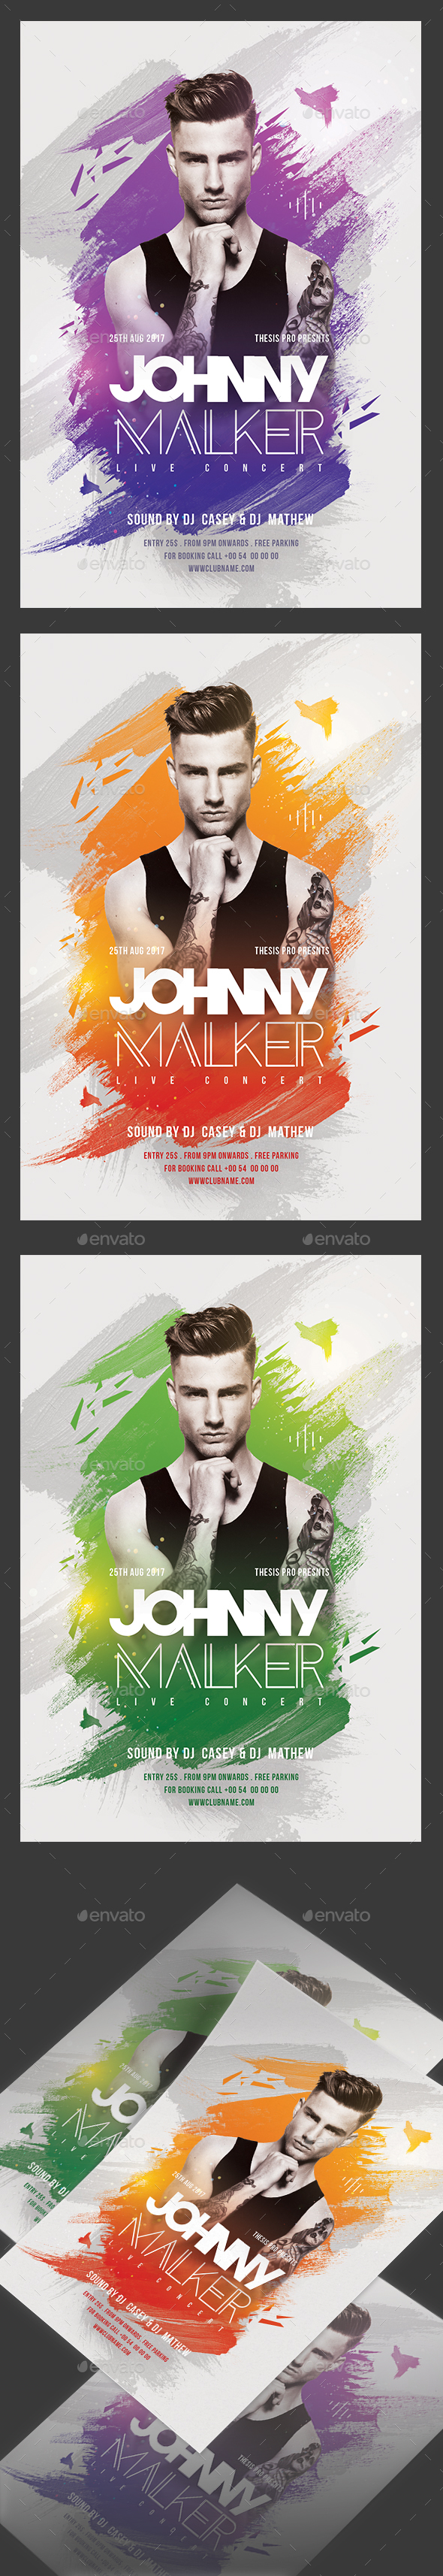 Dj Performance Flyer - Clubs & Parties Events